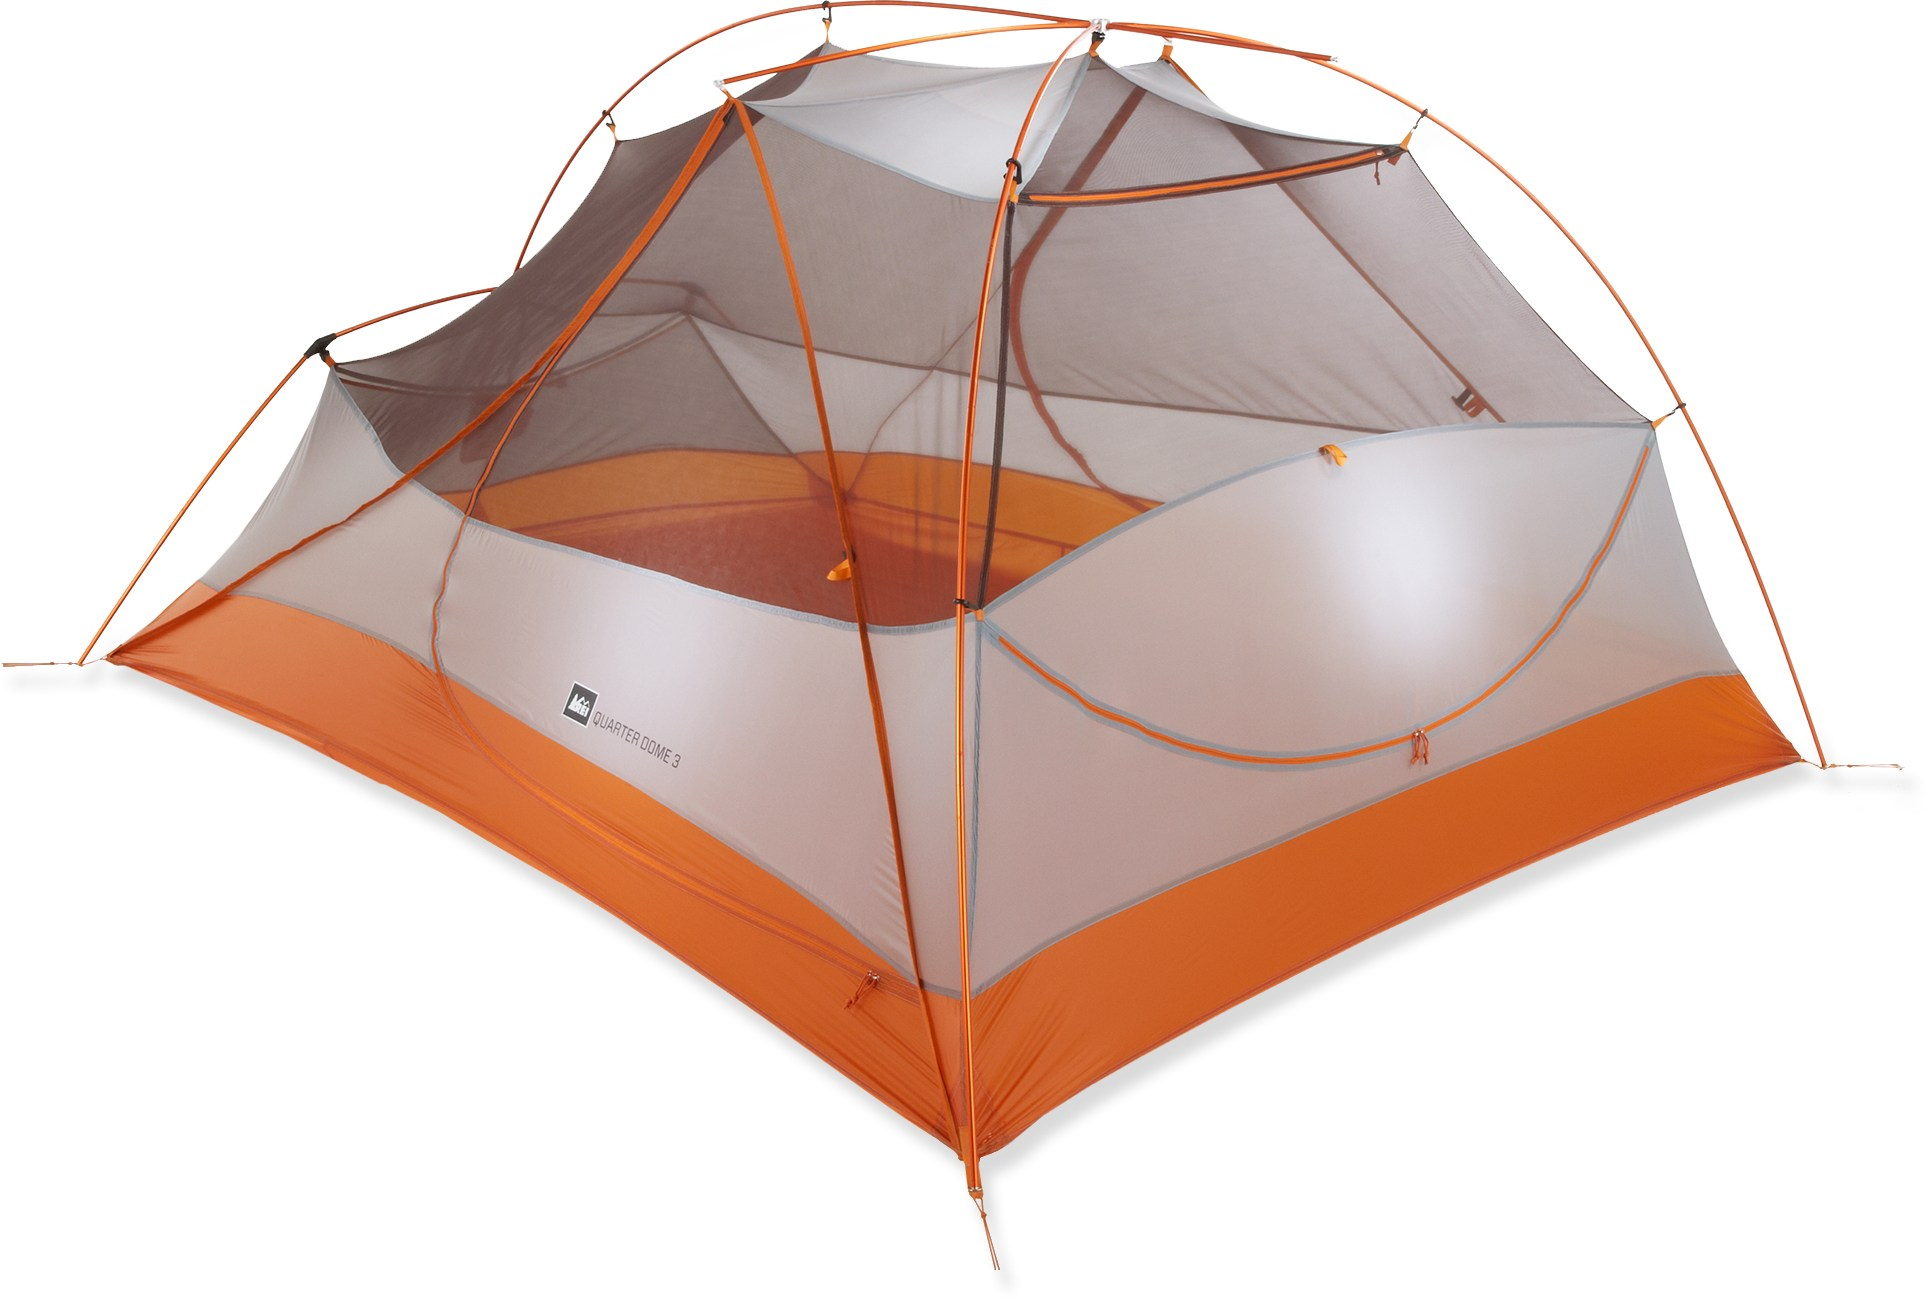 6029b96c-cc53-4ba4-8361-20798bba2694  sc 1 st  The Itinerant Angler & Marmot Titan/Limelight Series: Best (Affordable) Tent - The ...